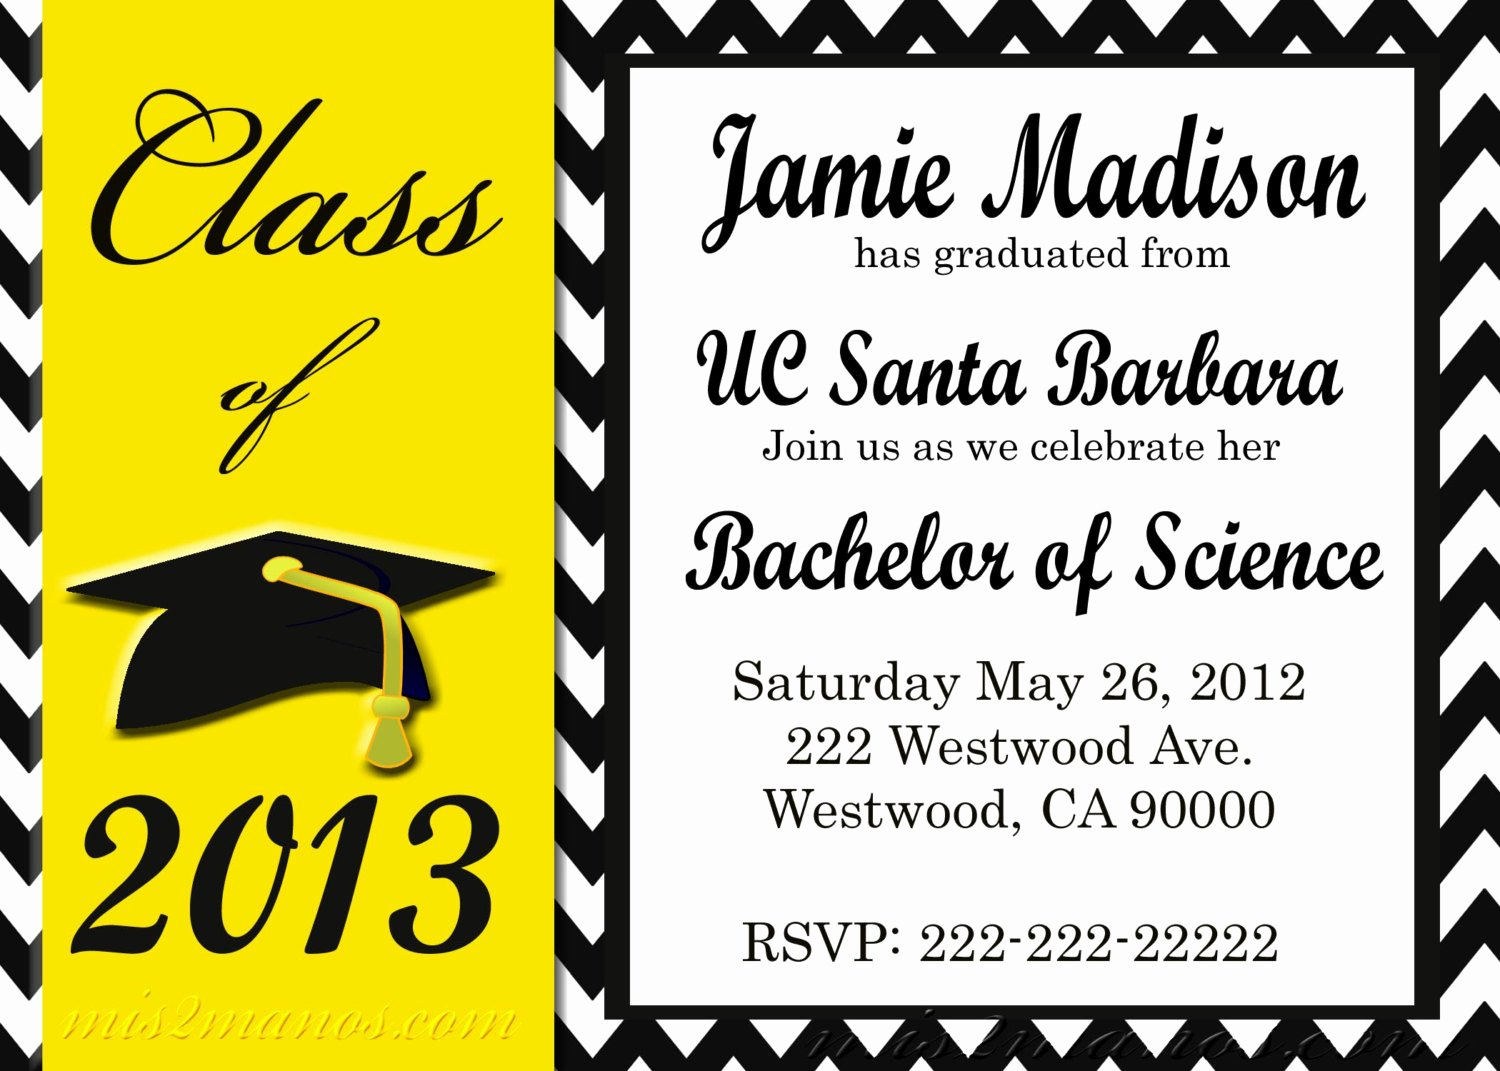 Graduation Invitation Templates Free Download Lovely Graduation Invite Templates